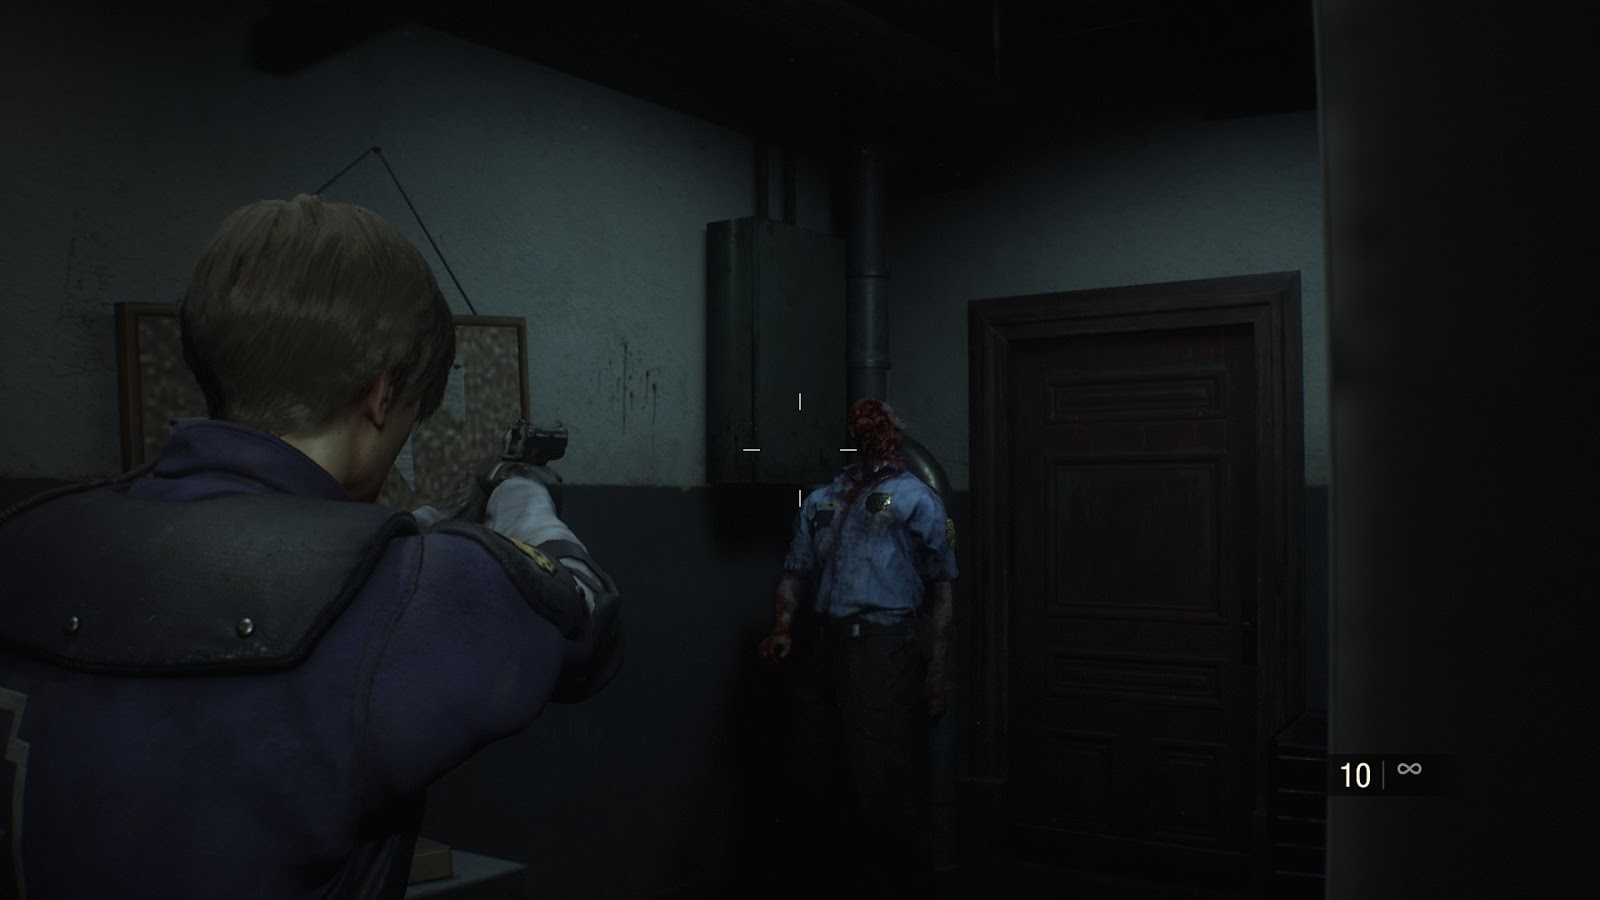 Leon from Resident Evil 2 Remake pointing his pistol at a zombie in a dark room.